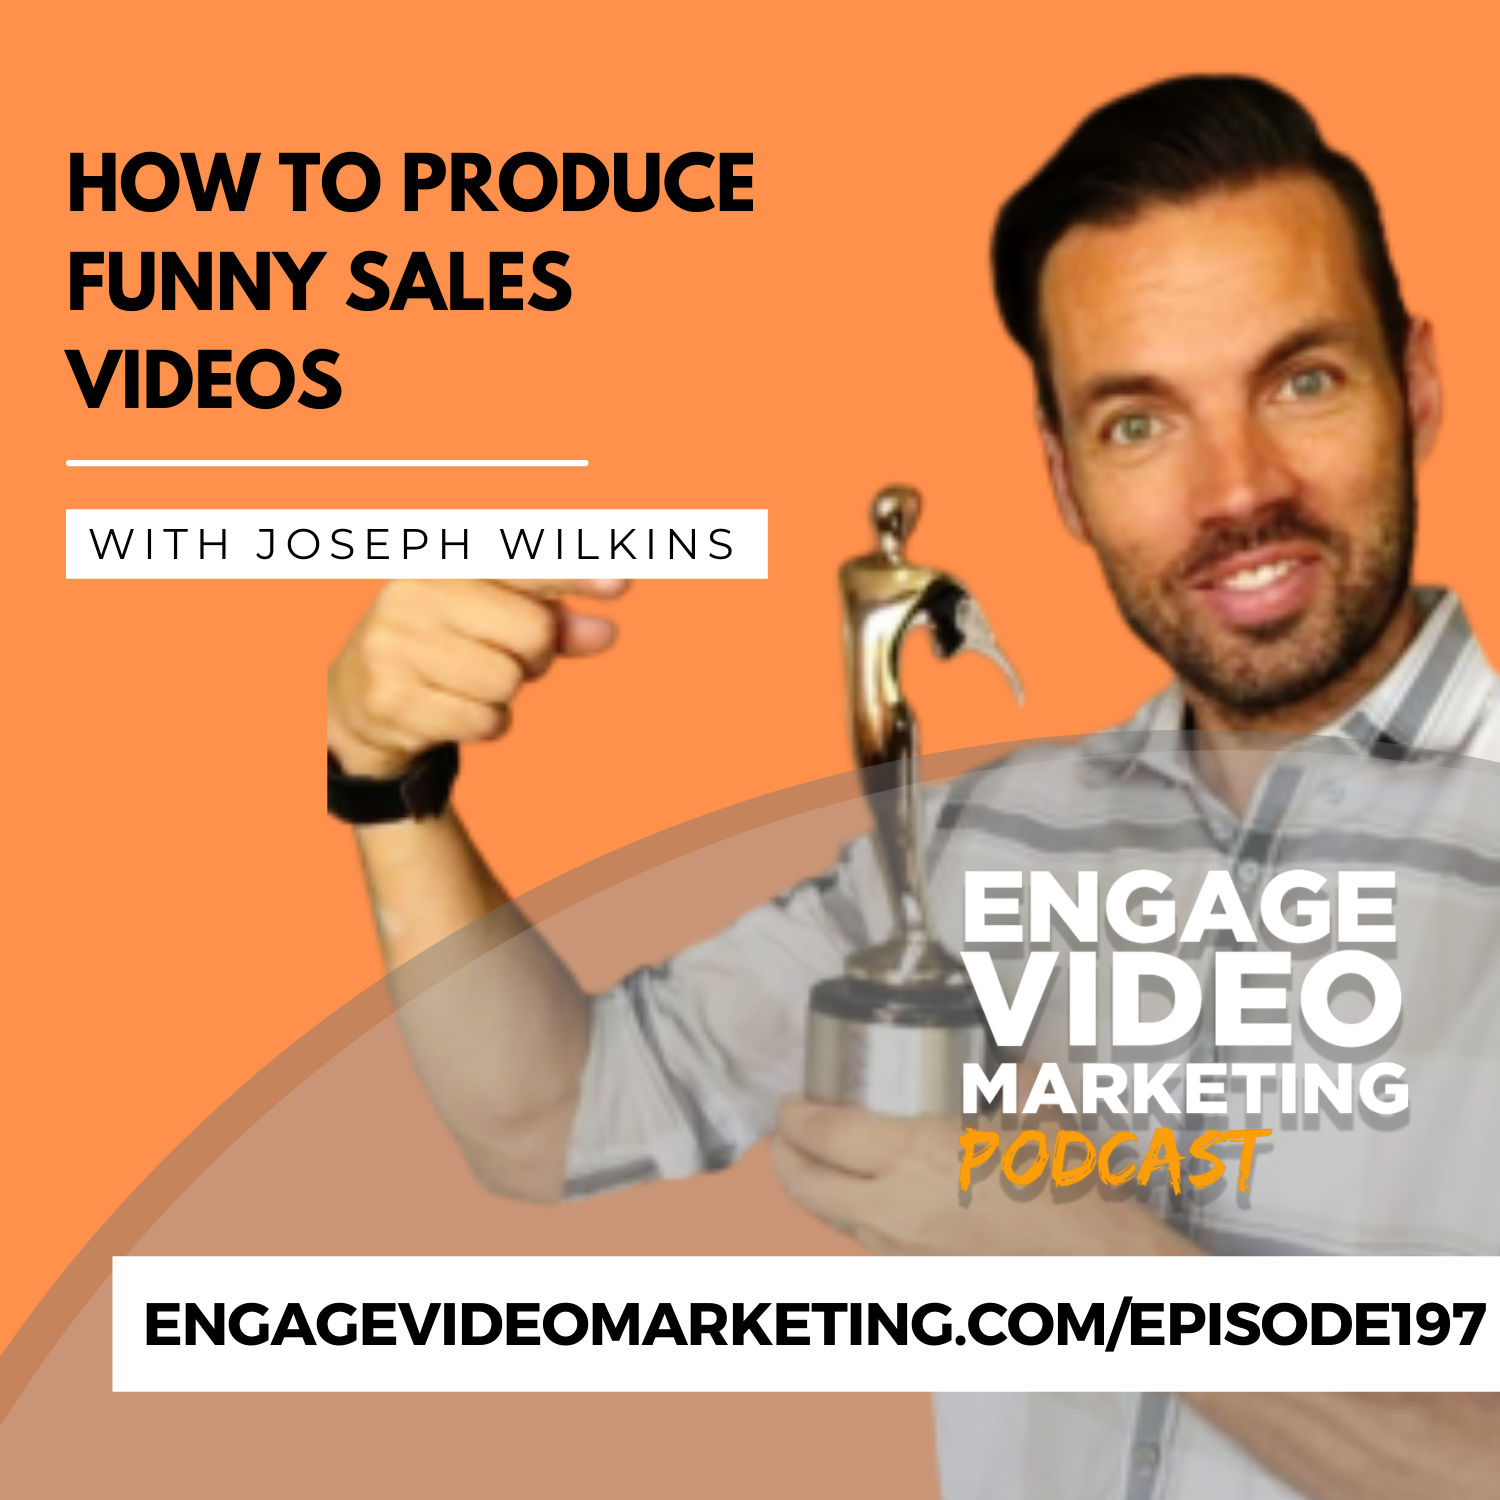 How to Produce Funny Sales Videos with Joseph Wilkins